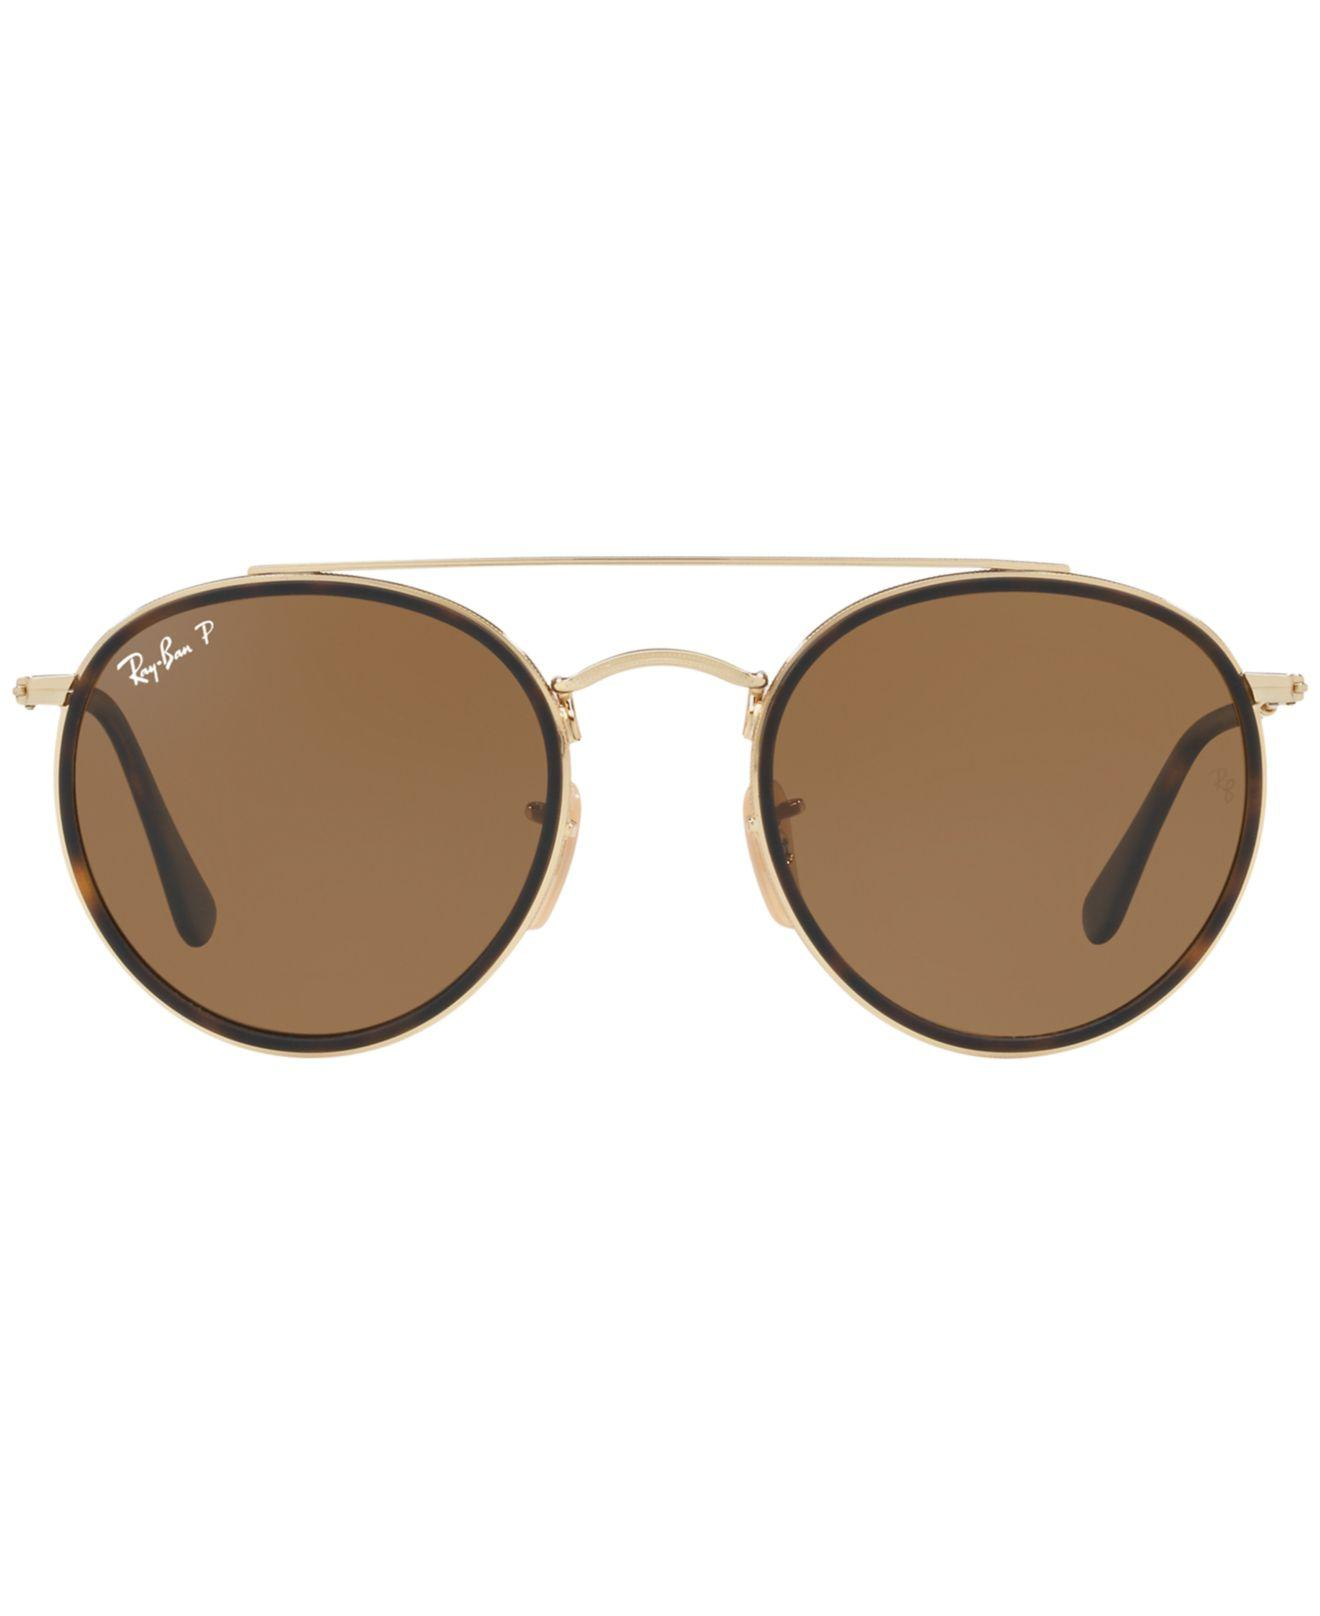 4b34cfb04342 Lyst - Ray-Ban Rb3647n Polarised Double Bridge Round Sunglasses in Brown  for Men - Save 1%